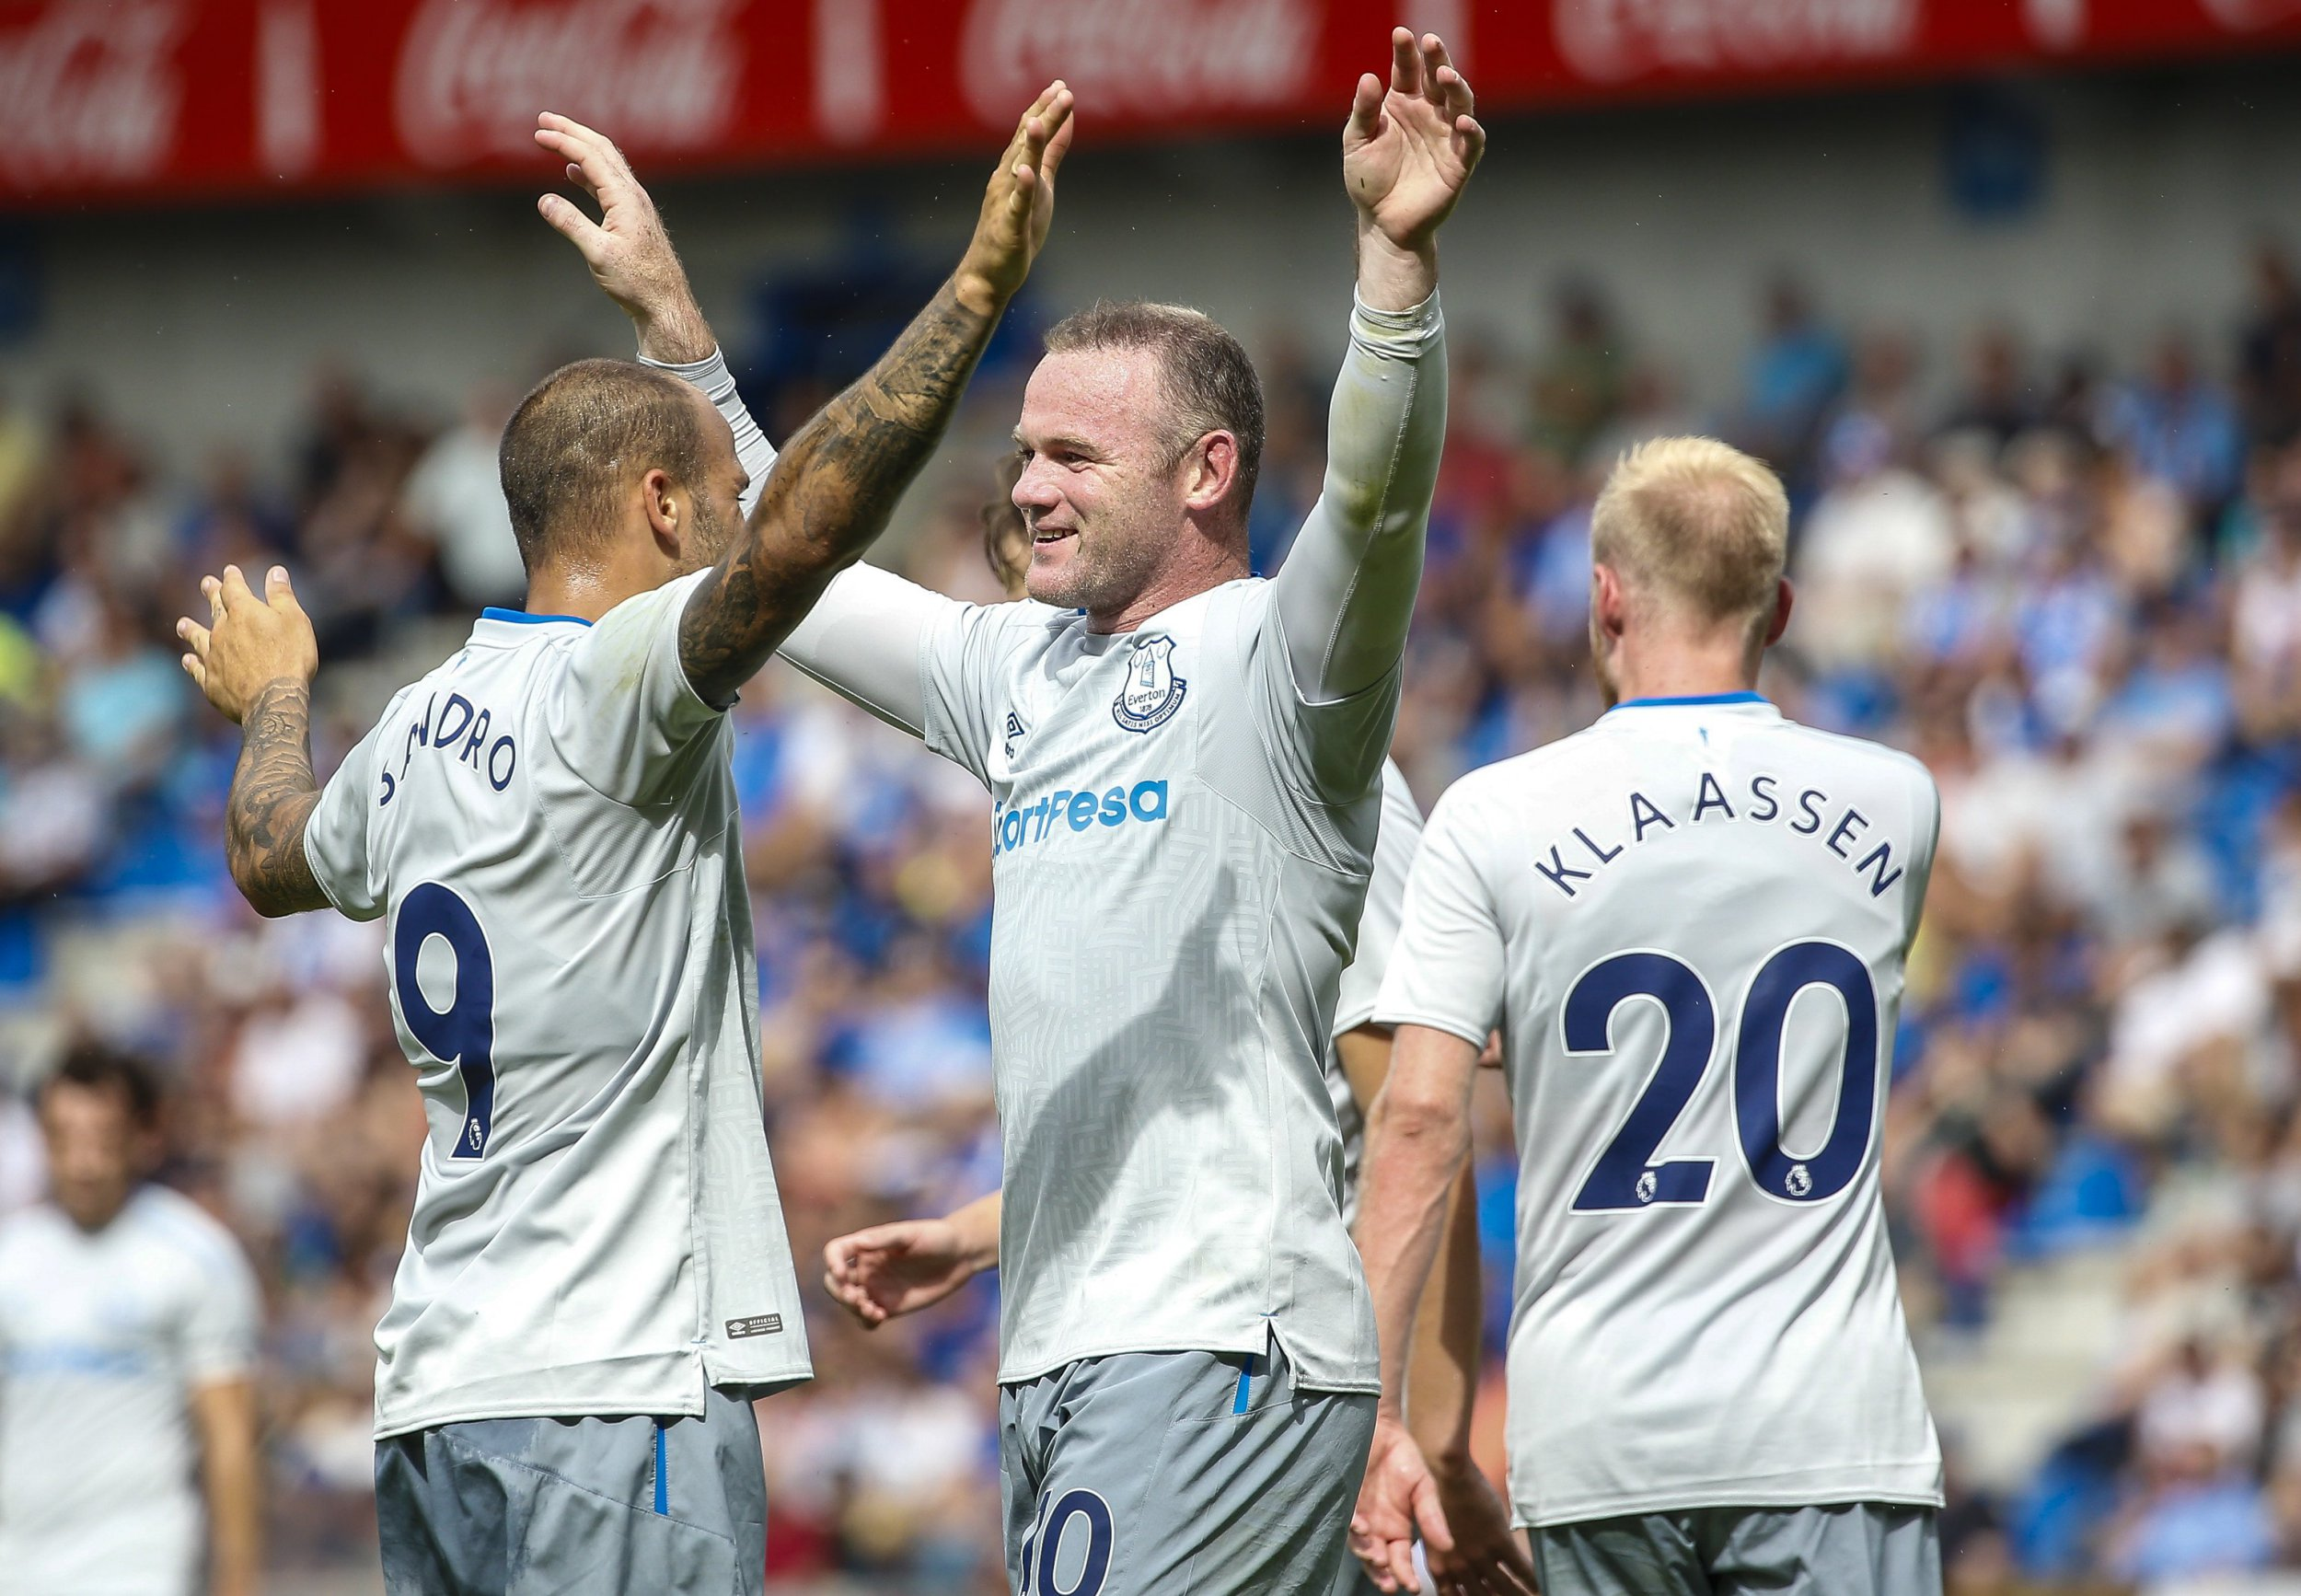 Wayne Rooney on target again as Everton draw with Genk